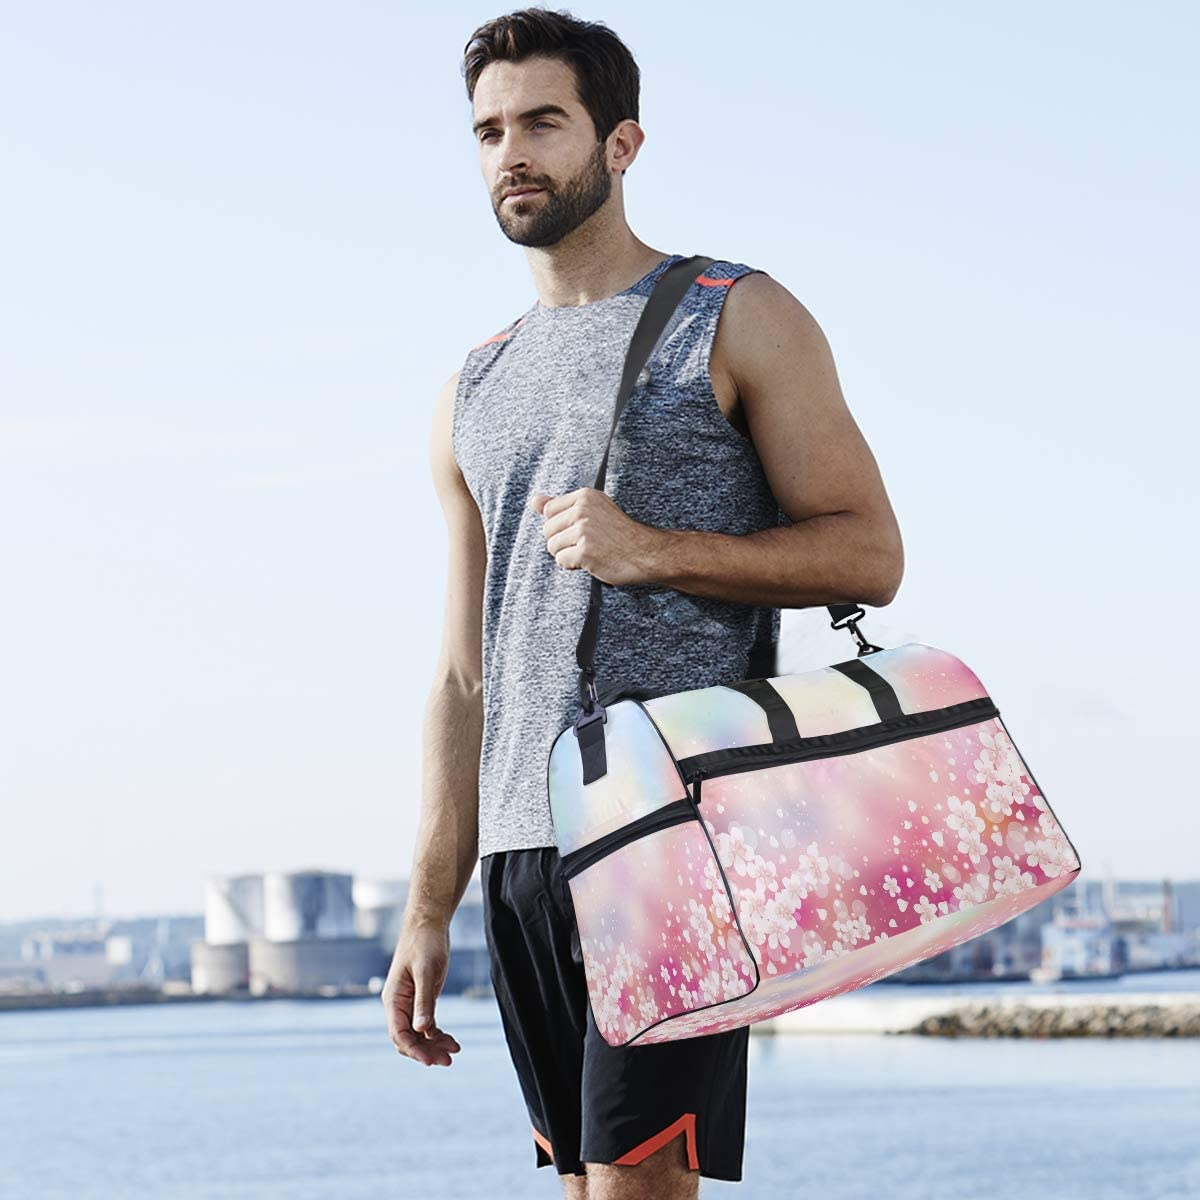 ALAZA Hipster Japanese Cherry Blossom Sports Gym Duffel Bag Travel Luggage Handbag Shoulder Bag with Shoes Compartment for Men Women